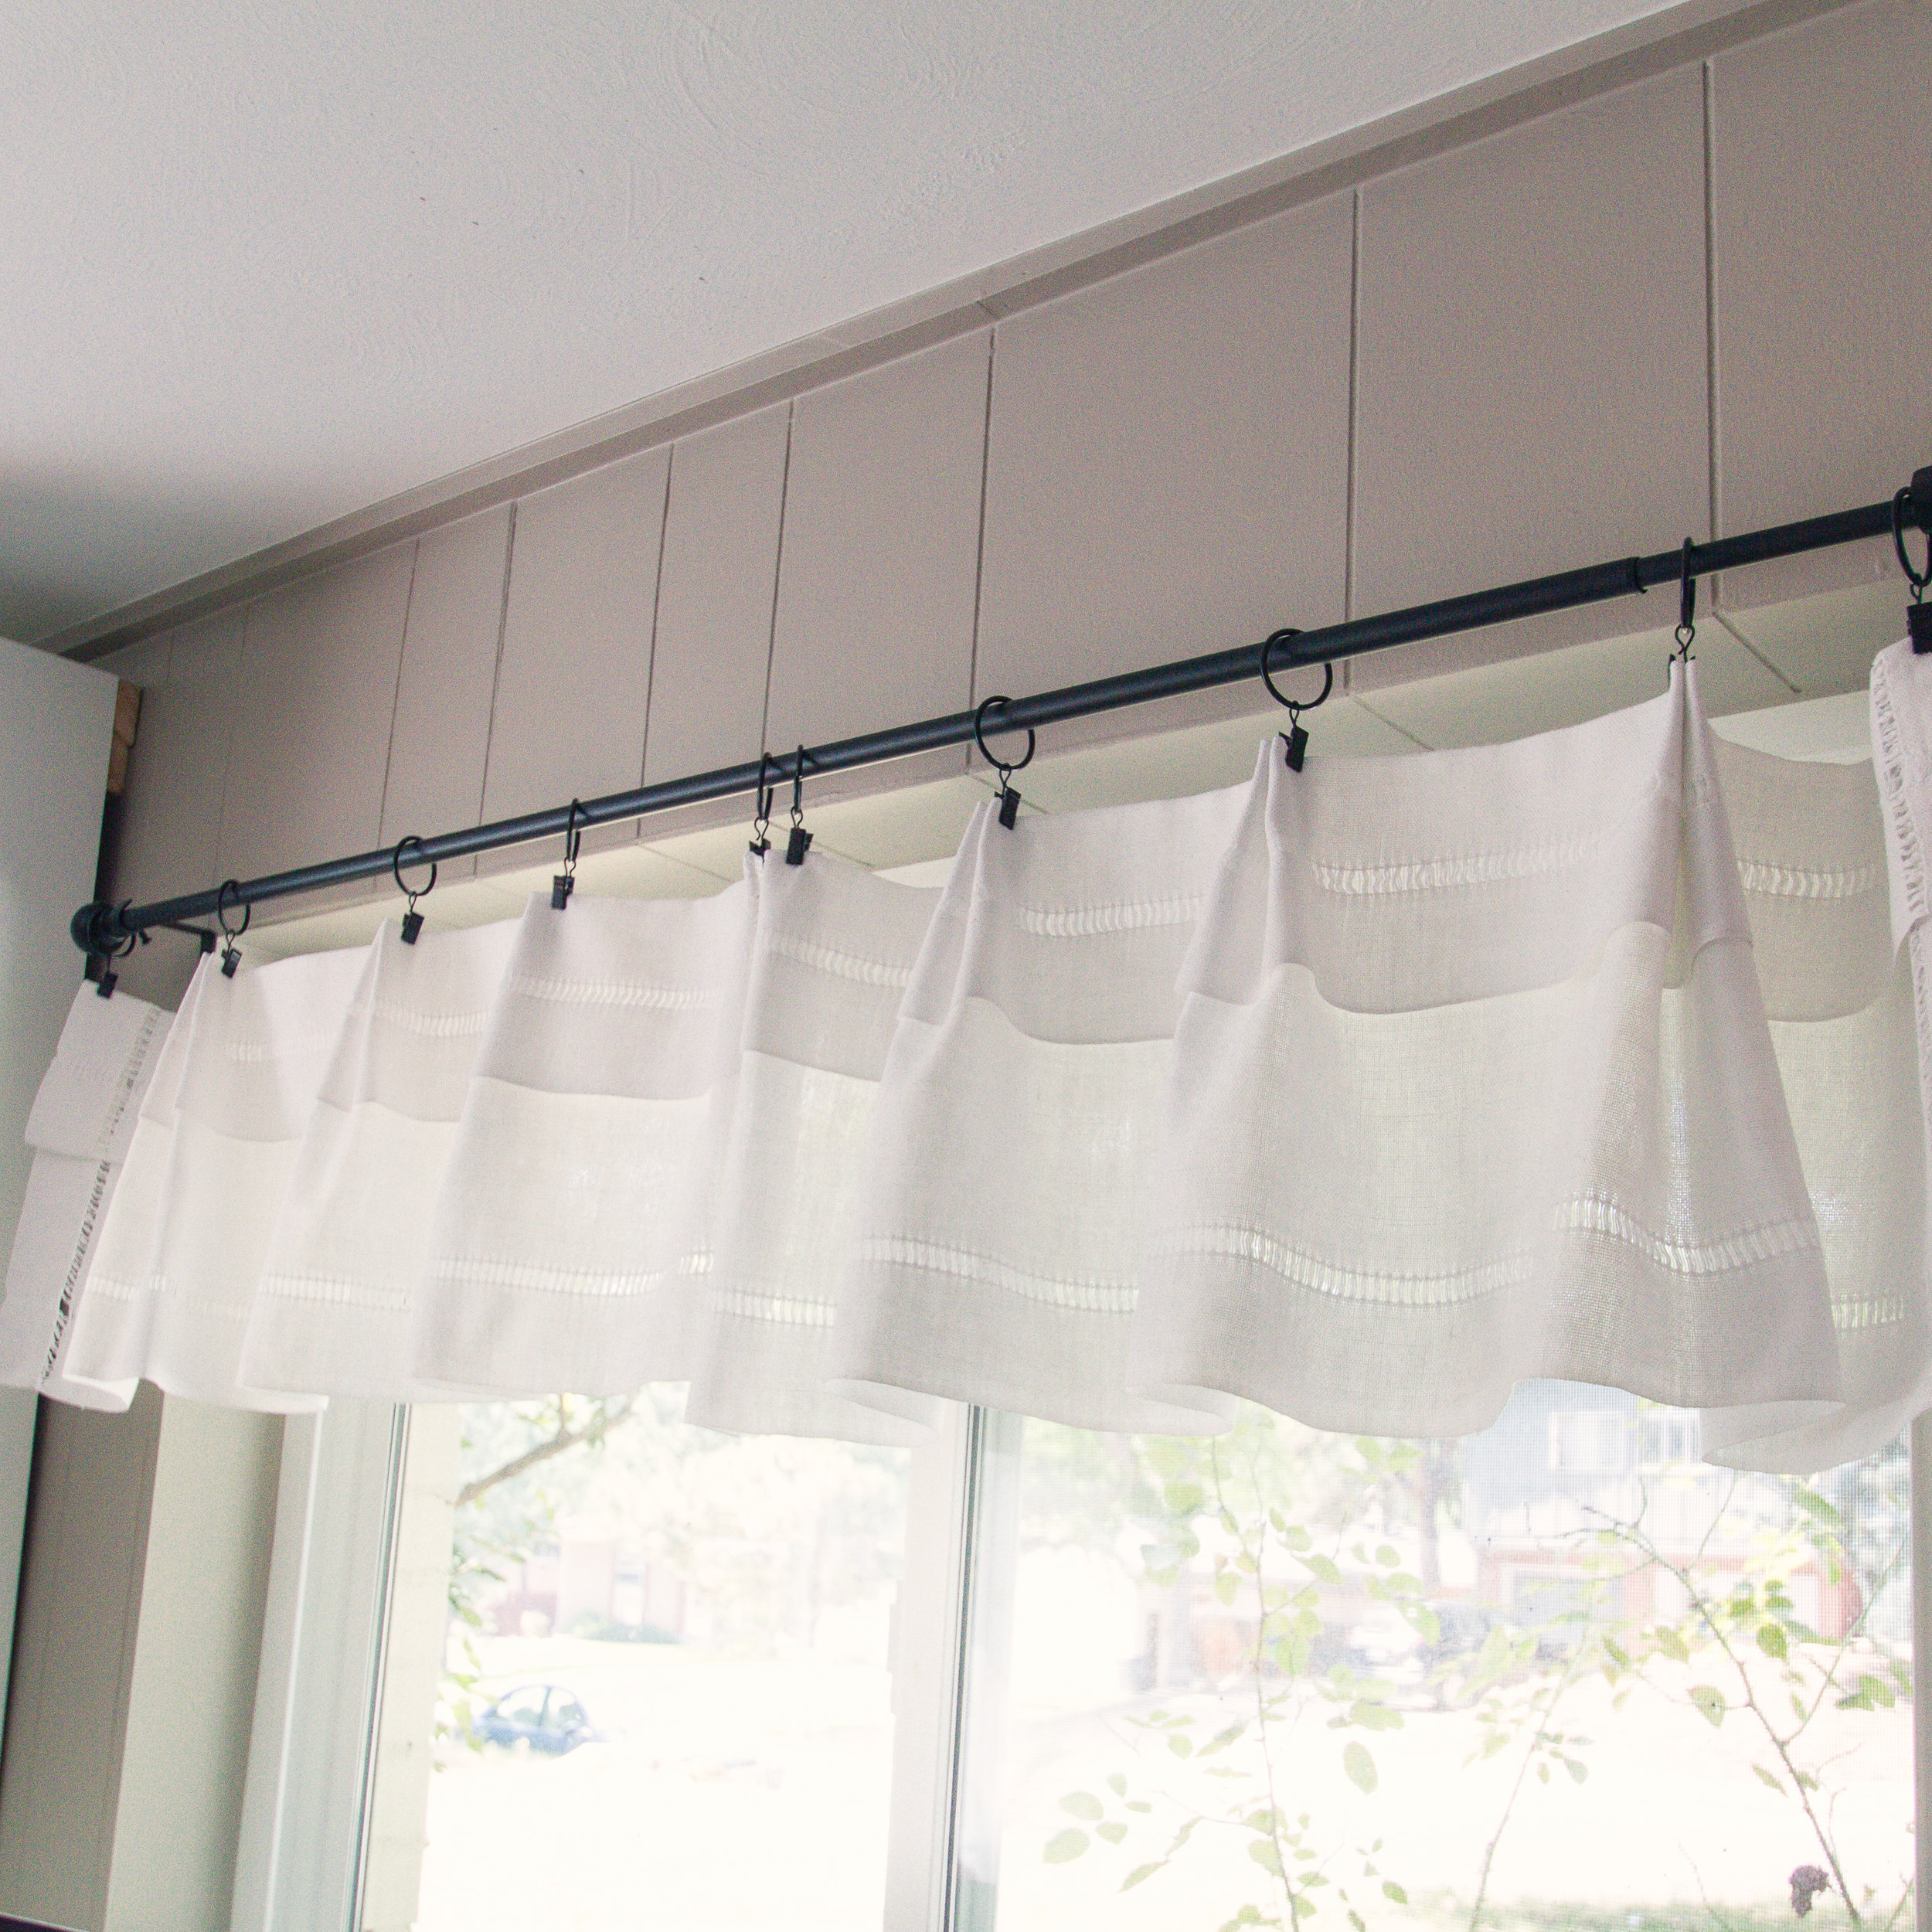 The finished valance over the smaller window.